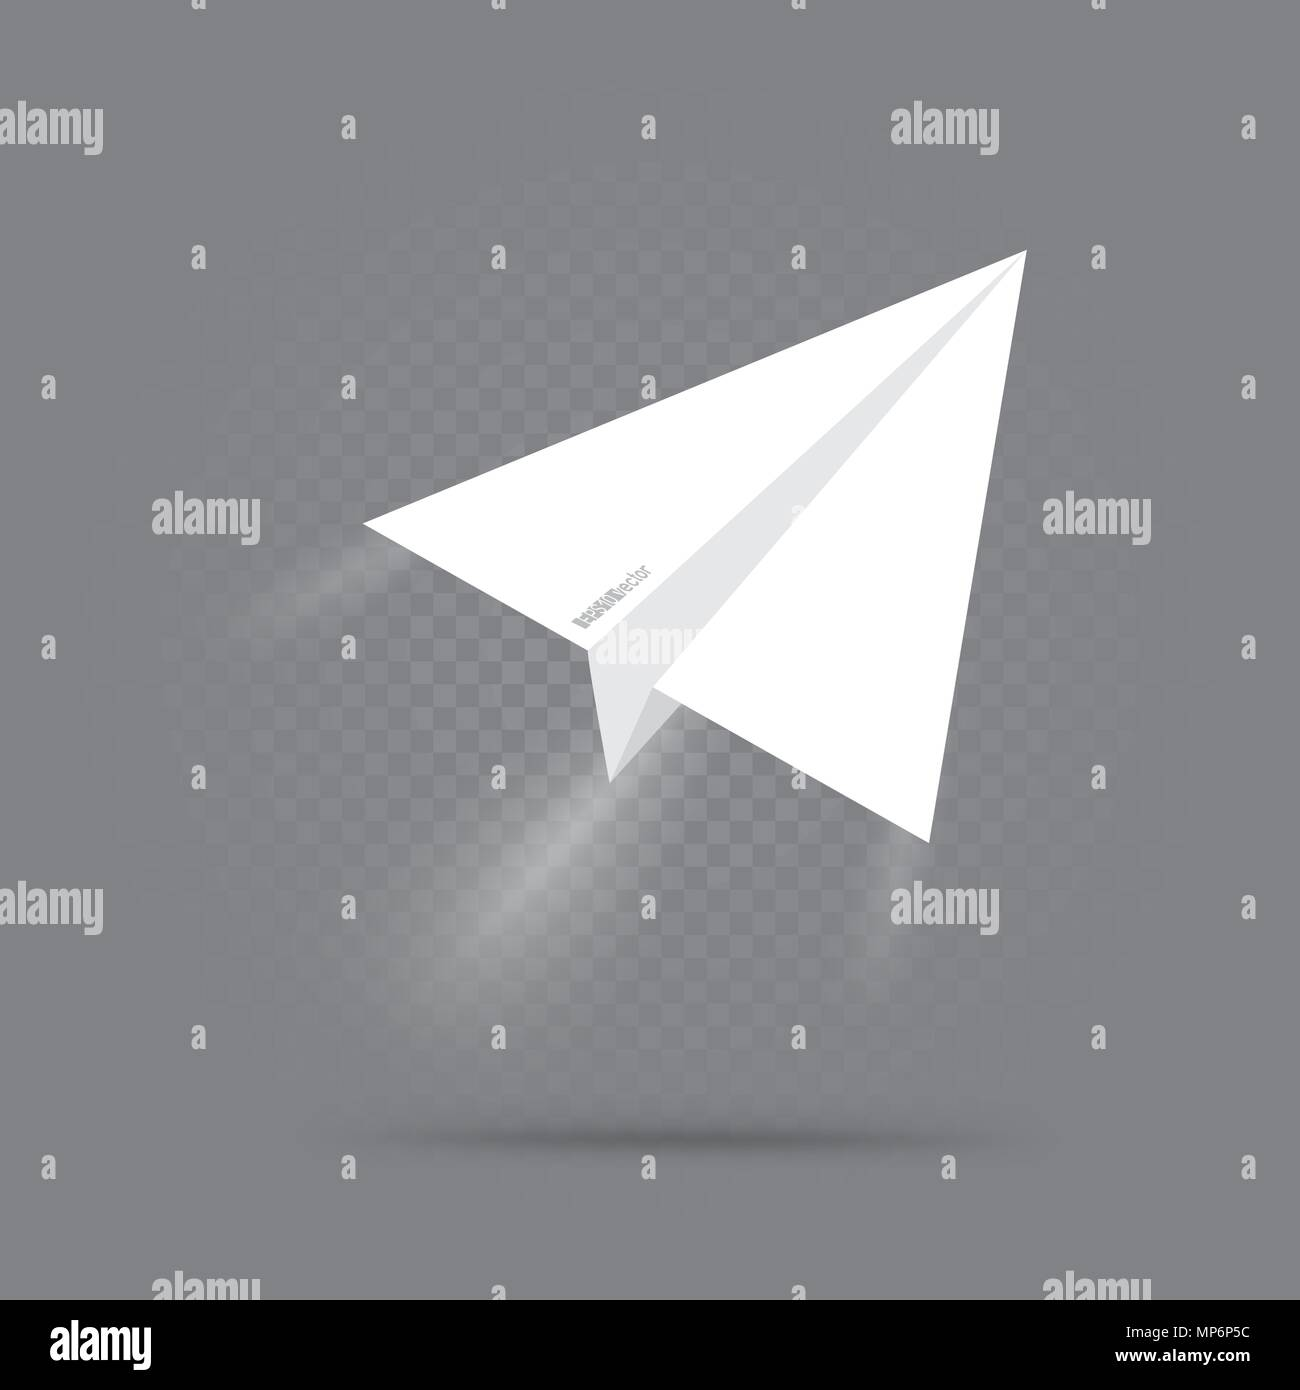 Paper Origami Plane Fly Up